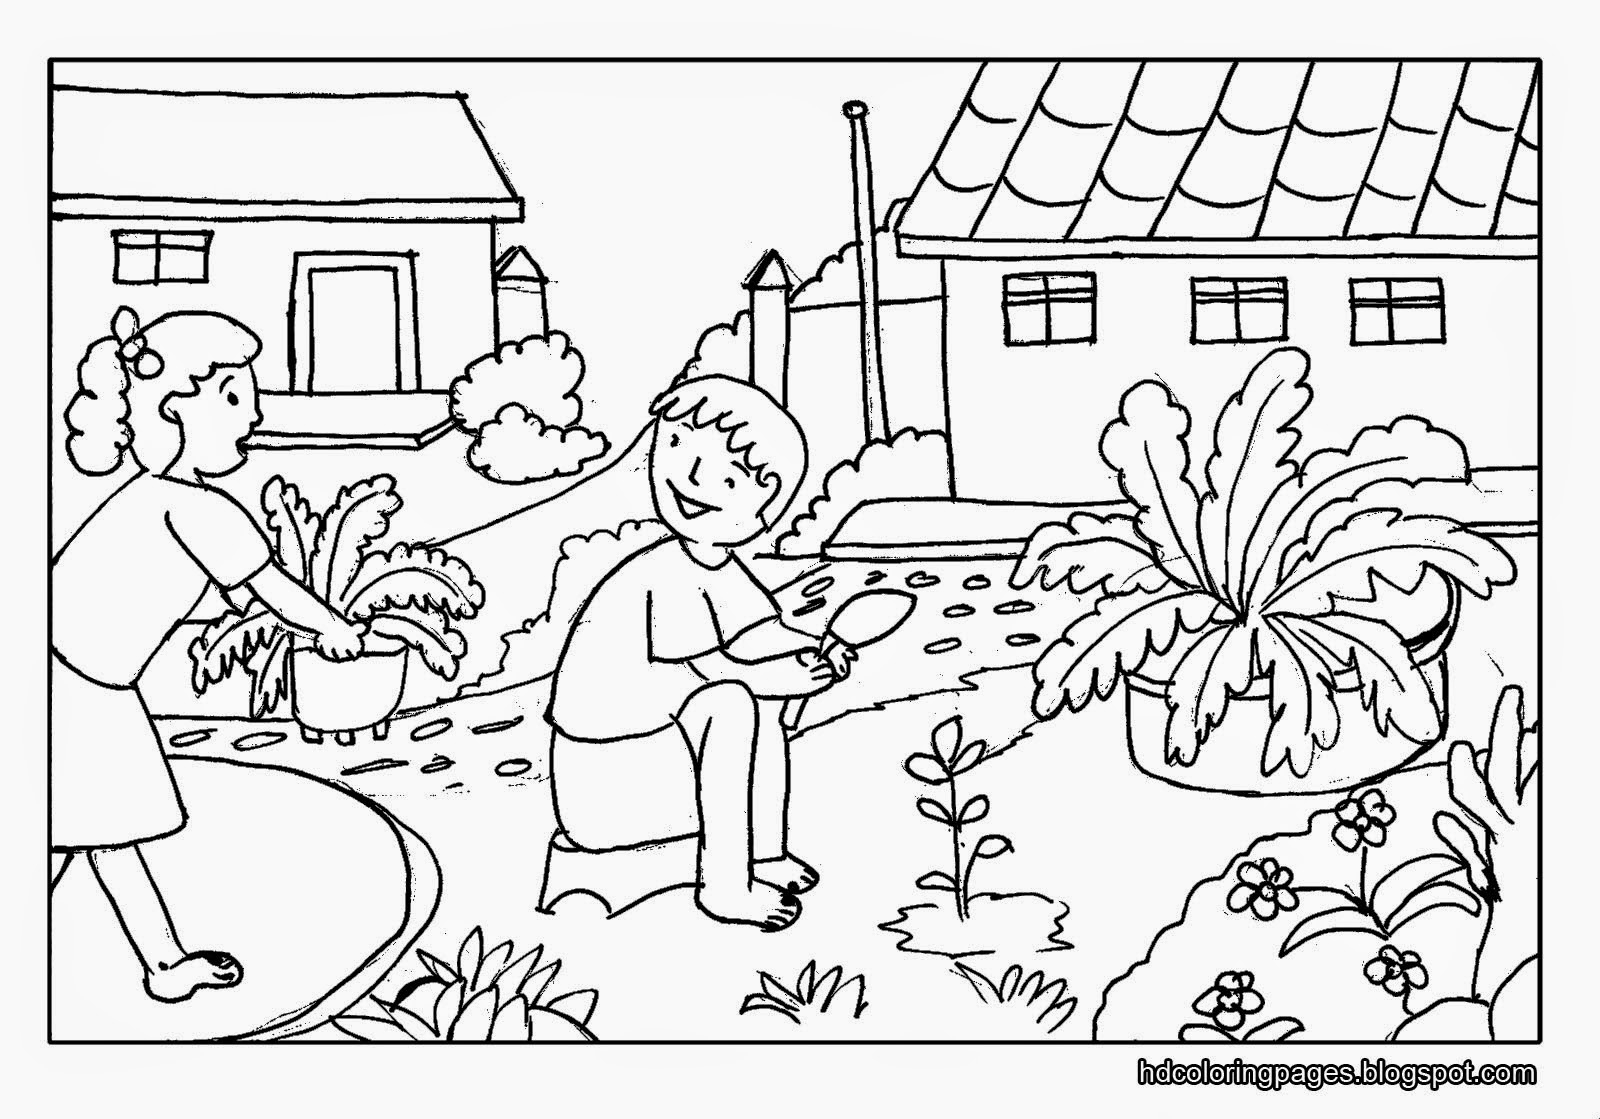 1600x1119 Scenery Drawing For Colouring Farm Scenery Drawings Gardening